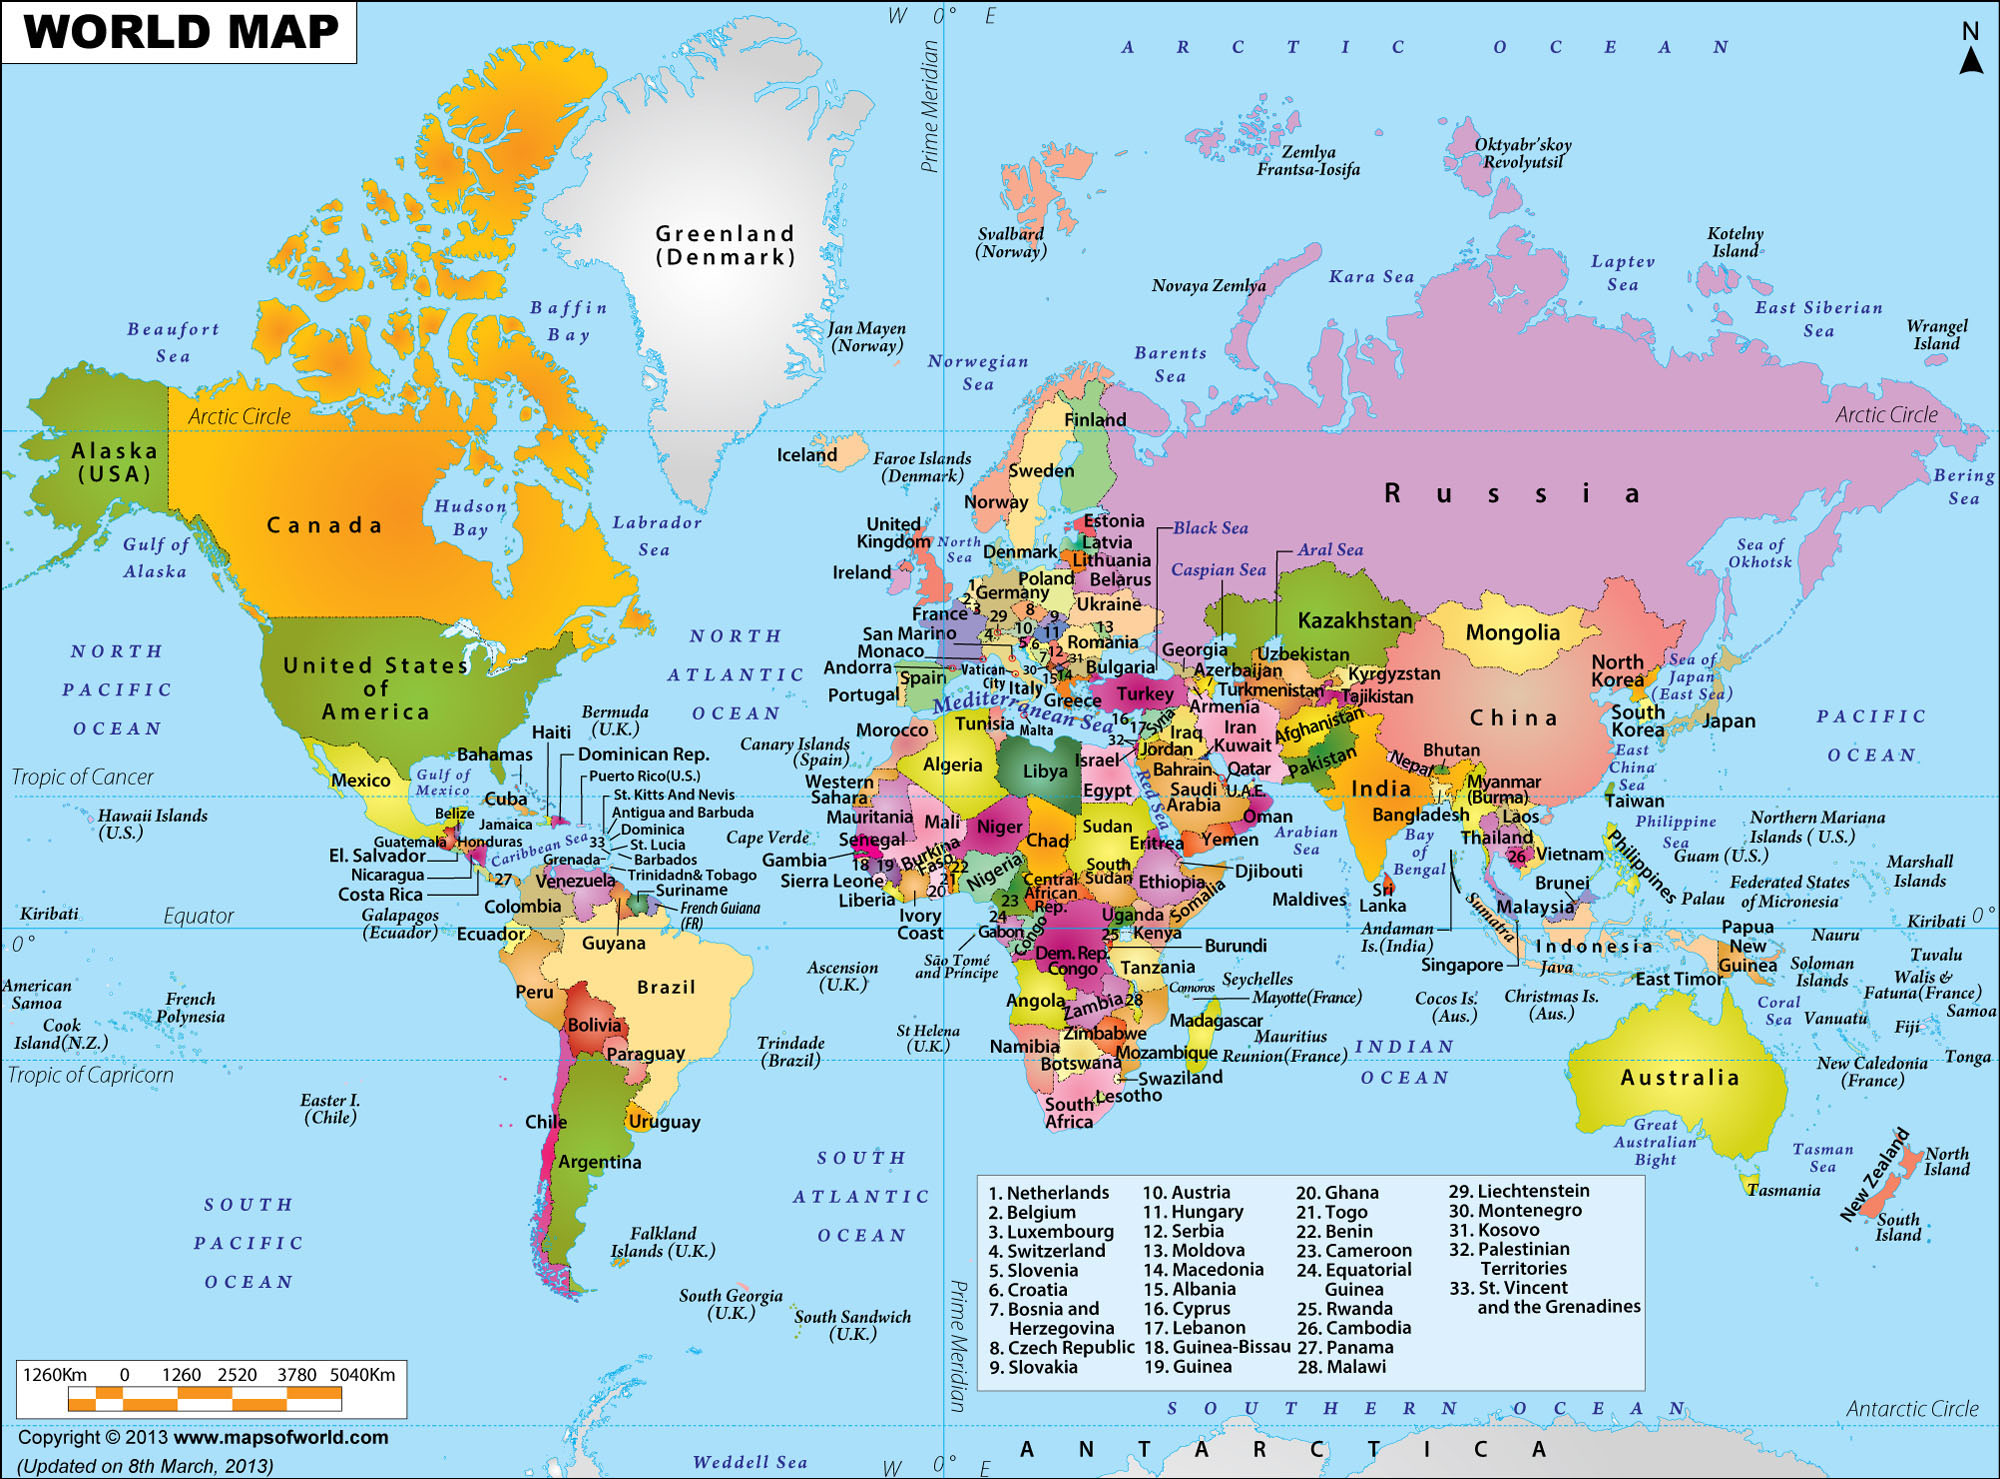 A political map of the world in 2014